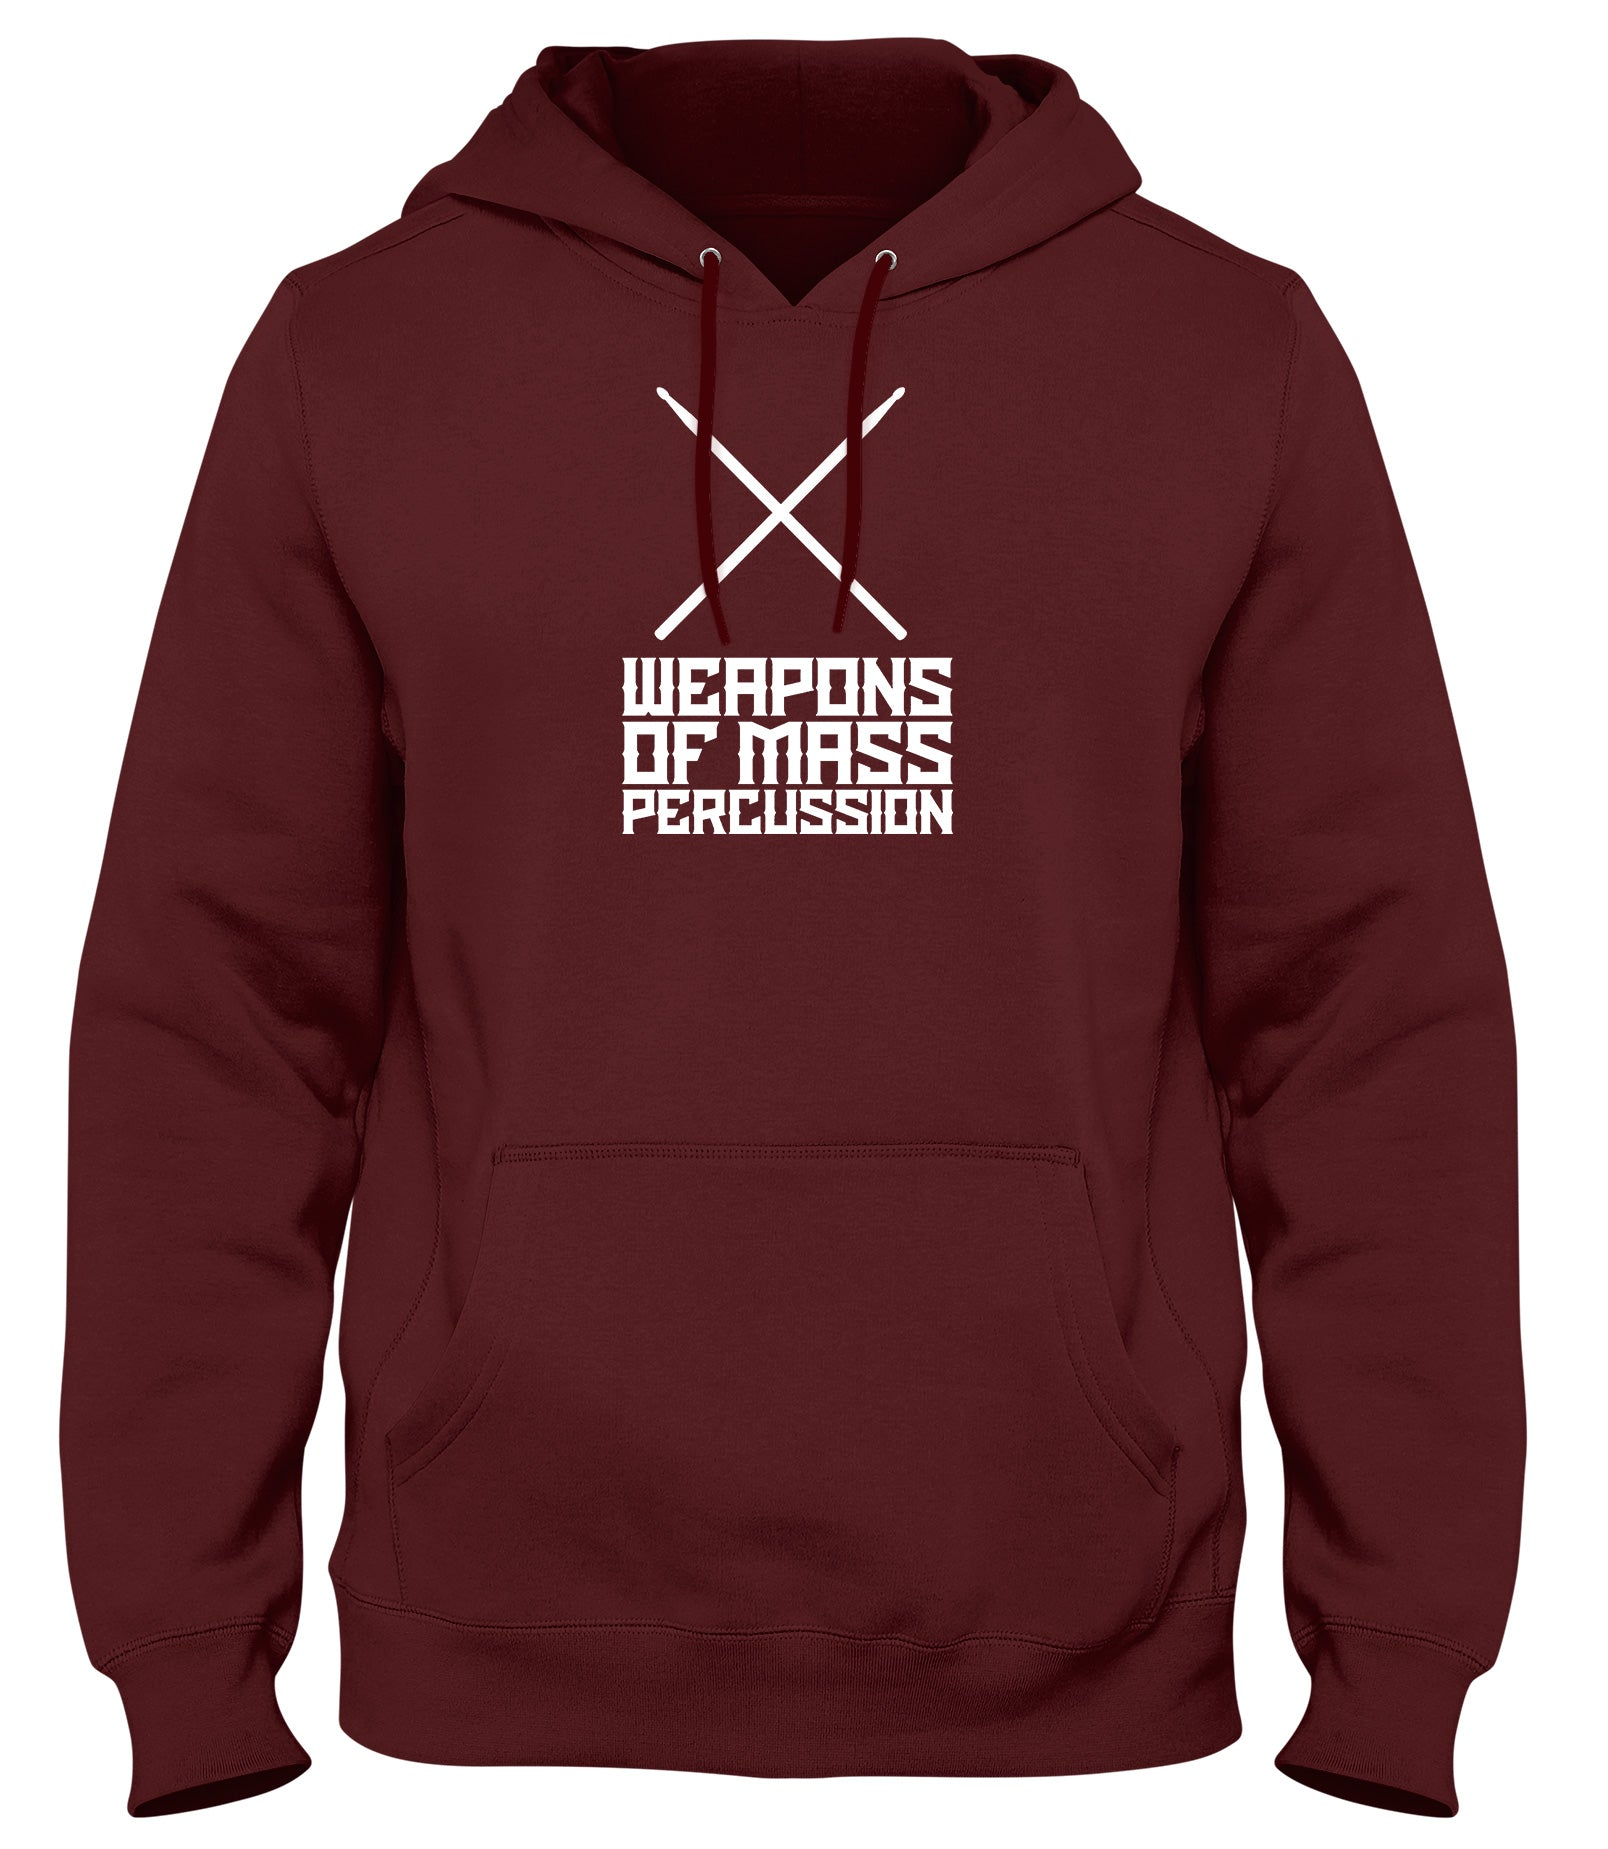 WEAPONS OF MASS PERCUSSION MENS WOMENS LADIES UNISEX FUNNY SLOGAN HOODIE